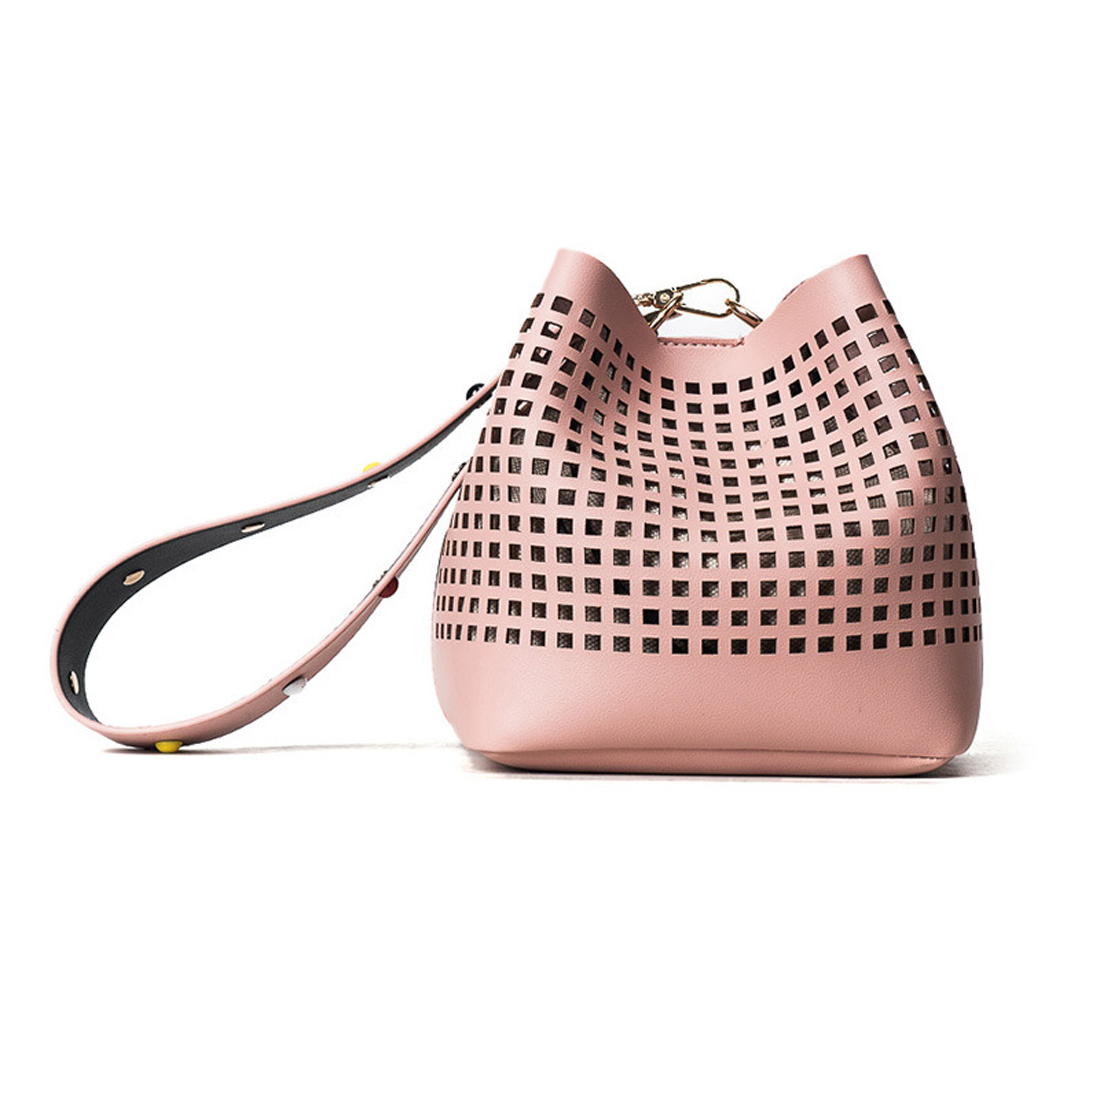 GZHOUSE Hollow Out Bucket Women Bag Summer Casual String Bolsa Feminina  Elegant Large Cross Body Bags Women OL Shooulder Bag-in Top-Handle Bags  from Luggage ... a7de123cbe9d2